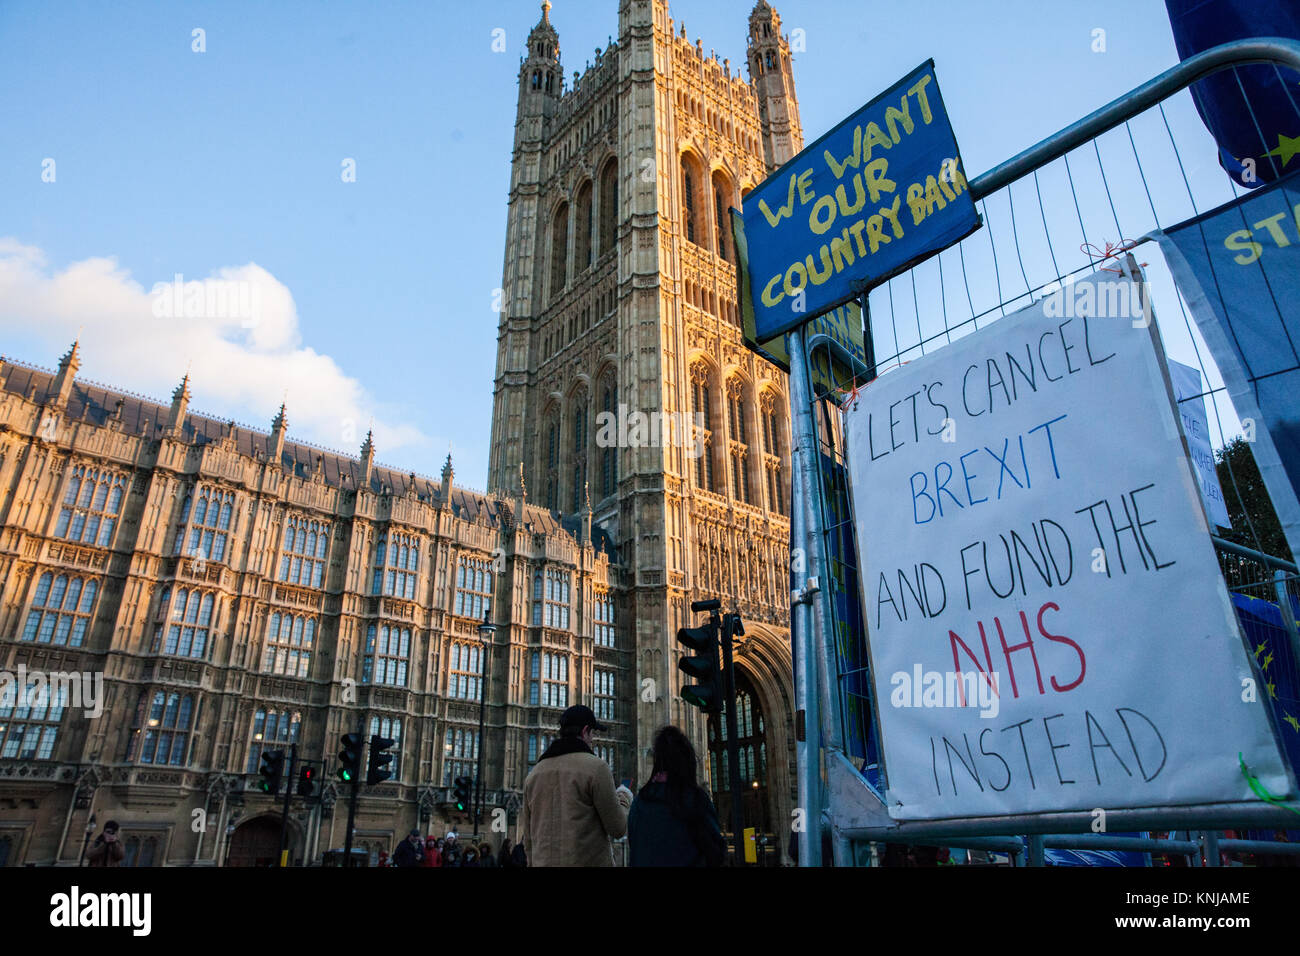 London, UK. 8th December, 2017. An anti-Brexit signs opposite the Palace of Westminster. - Stock Image